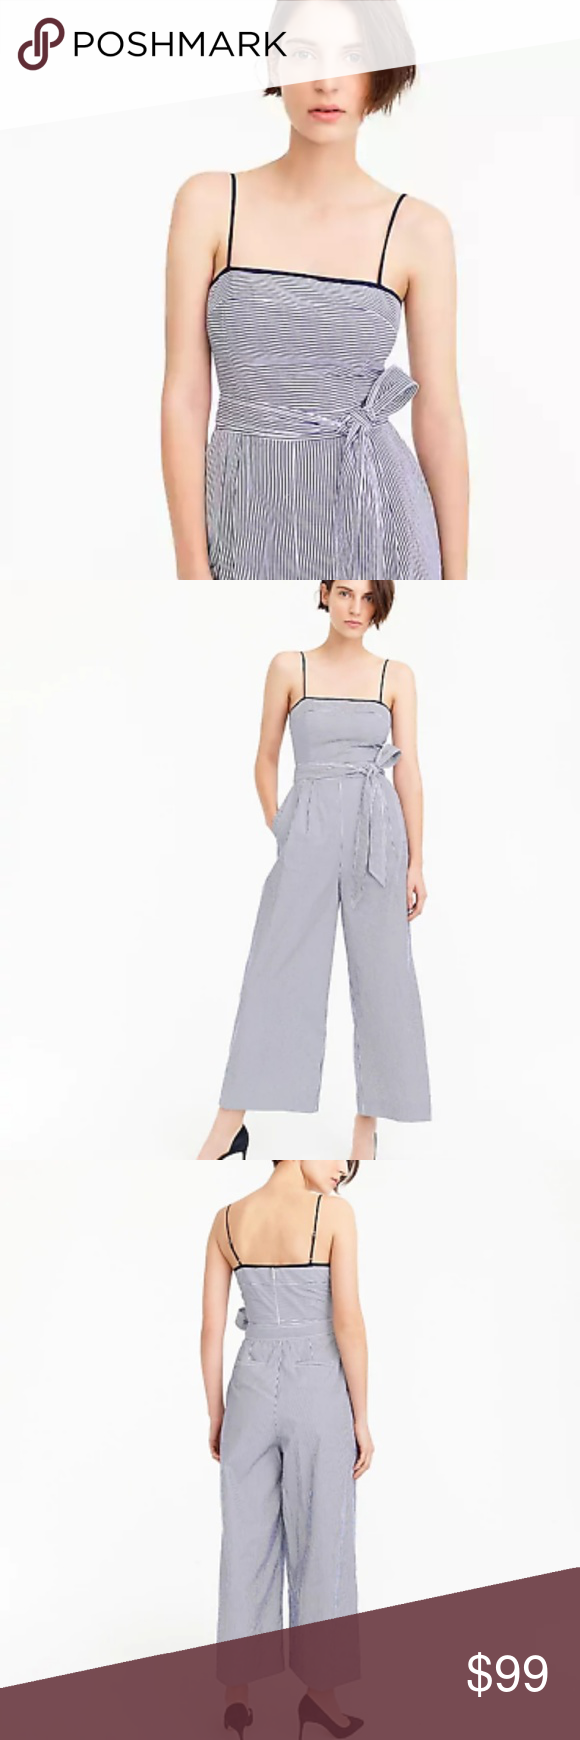 237e0b1098a J Crew Striped Linen Jumpsuit Tie Blue White 0 Meet the easiest outfit on  the planet